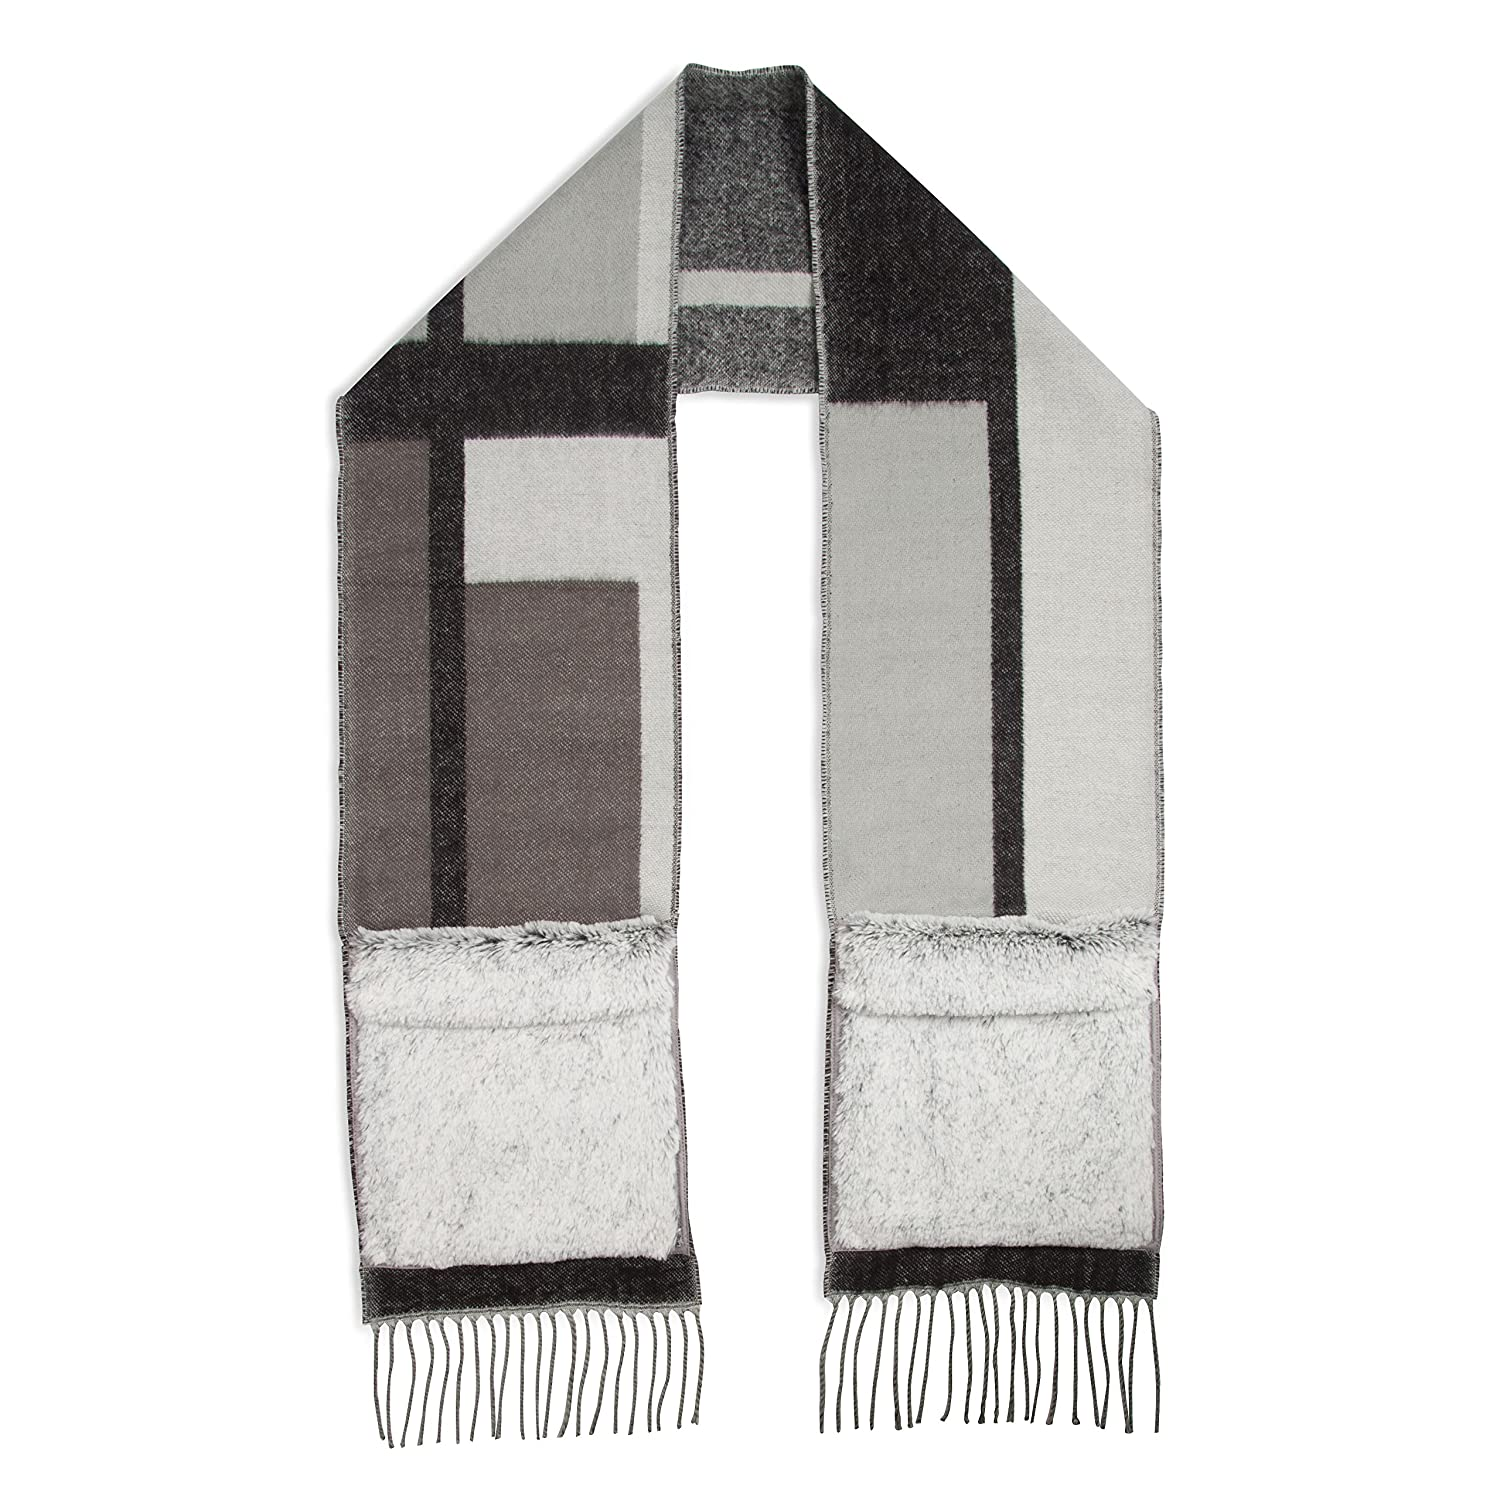 H2Z Scarves Women's Plaid Patterned Winter Fall Scarf with Soft Gray Hand Warmer Pockets, Black